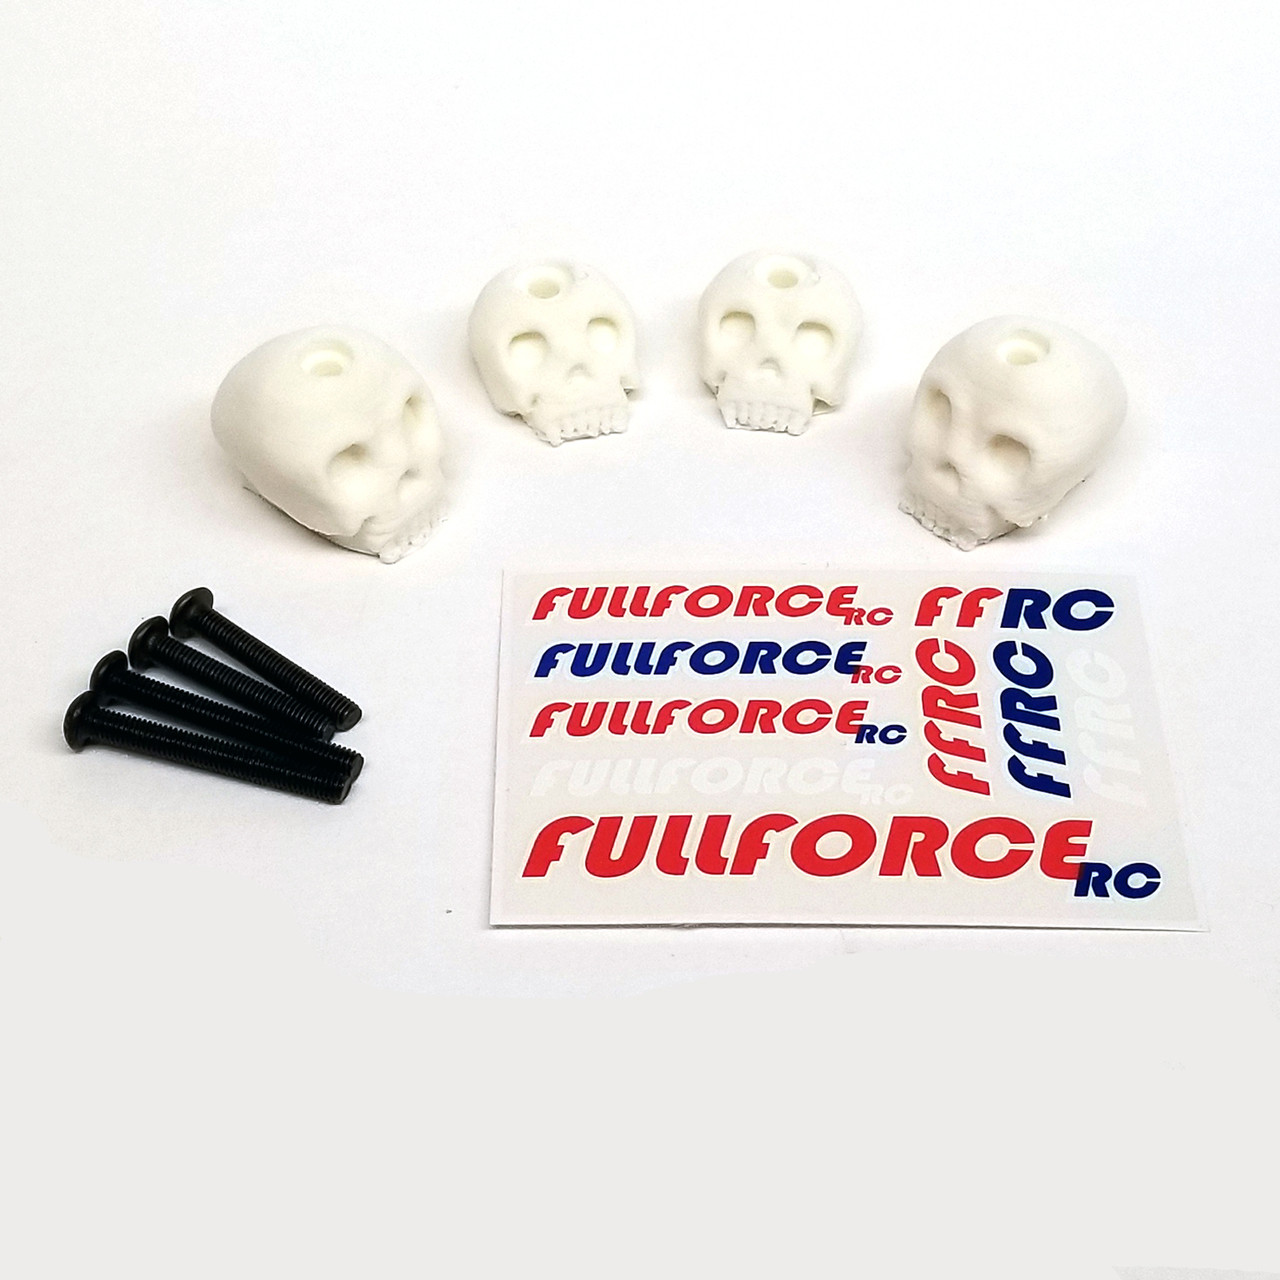 Traxxas X-MAXX Custom 3D printed skull body washers by Fullforce RC.  Complete with hardware.  4 PACK  White version.